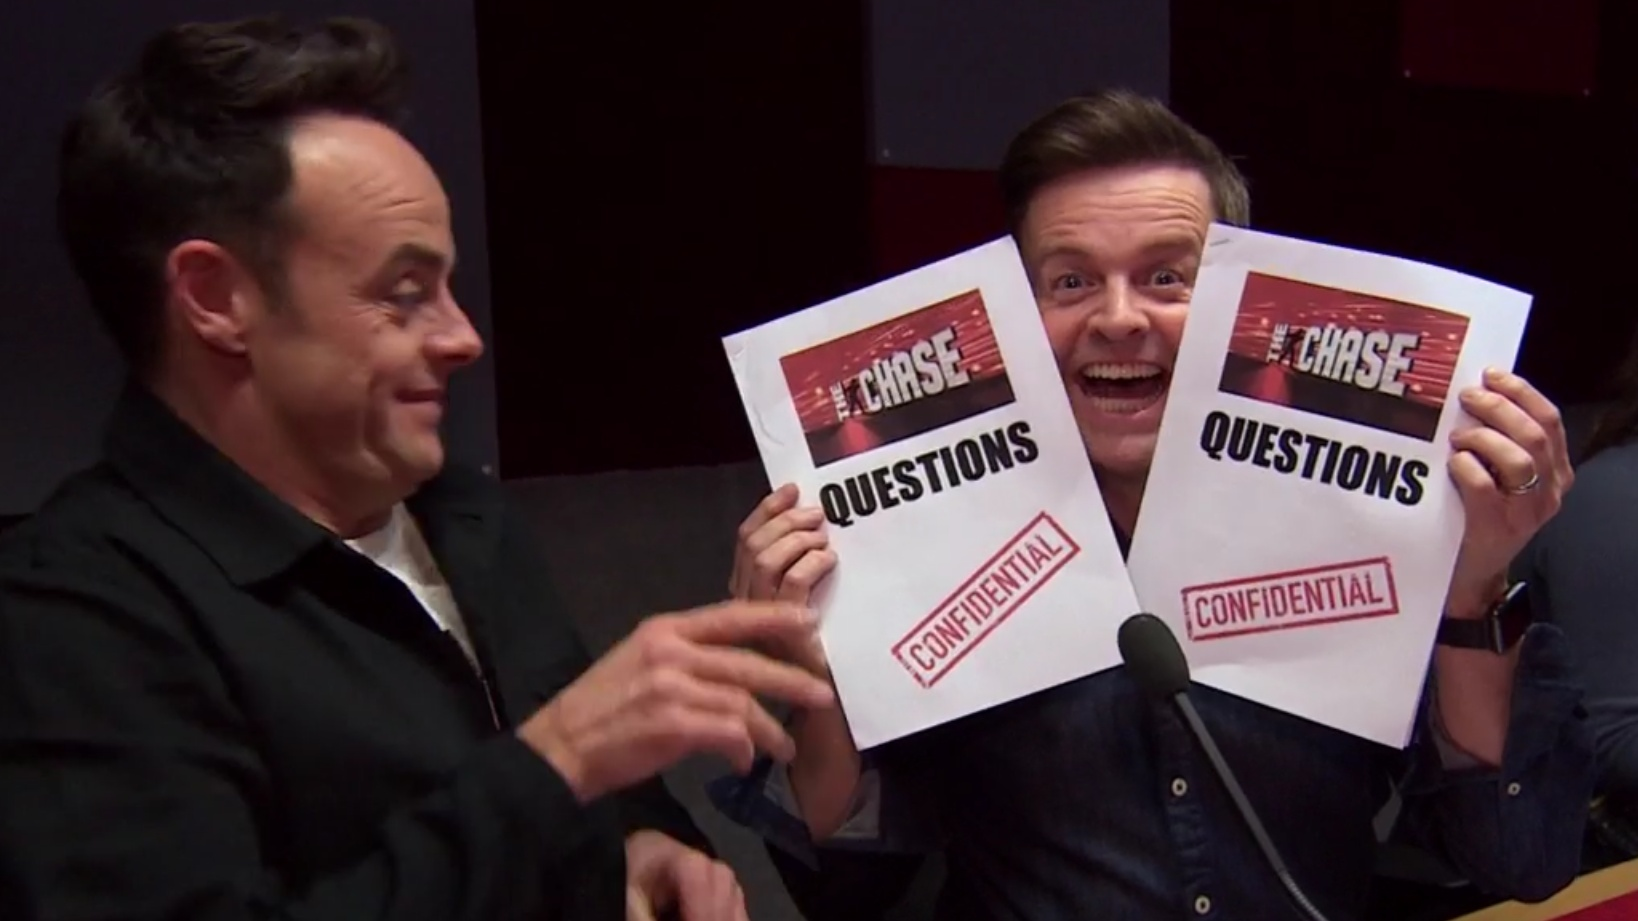 Ant and Dec get hold of The Chase questions